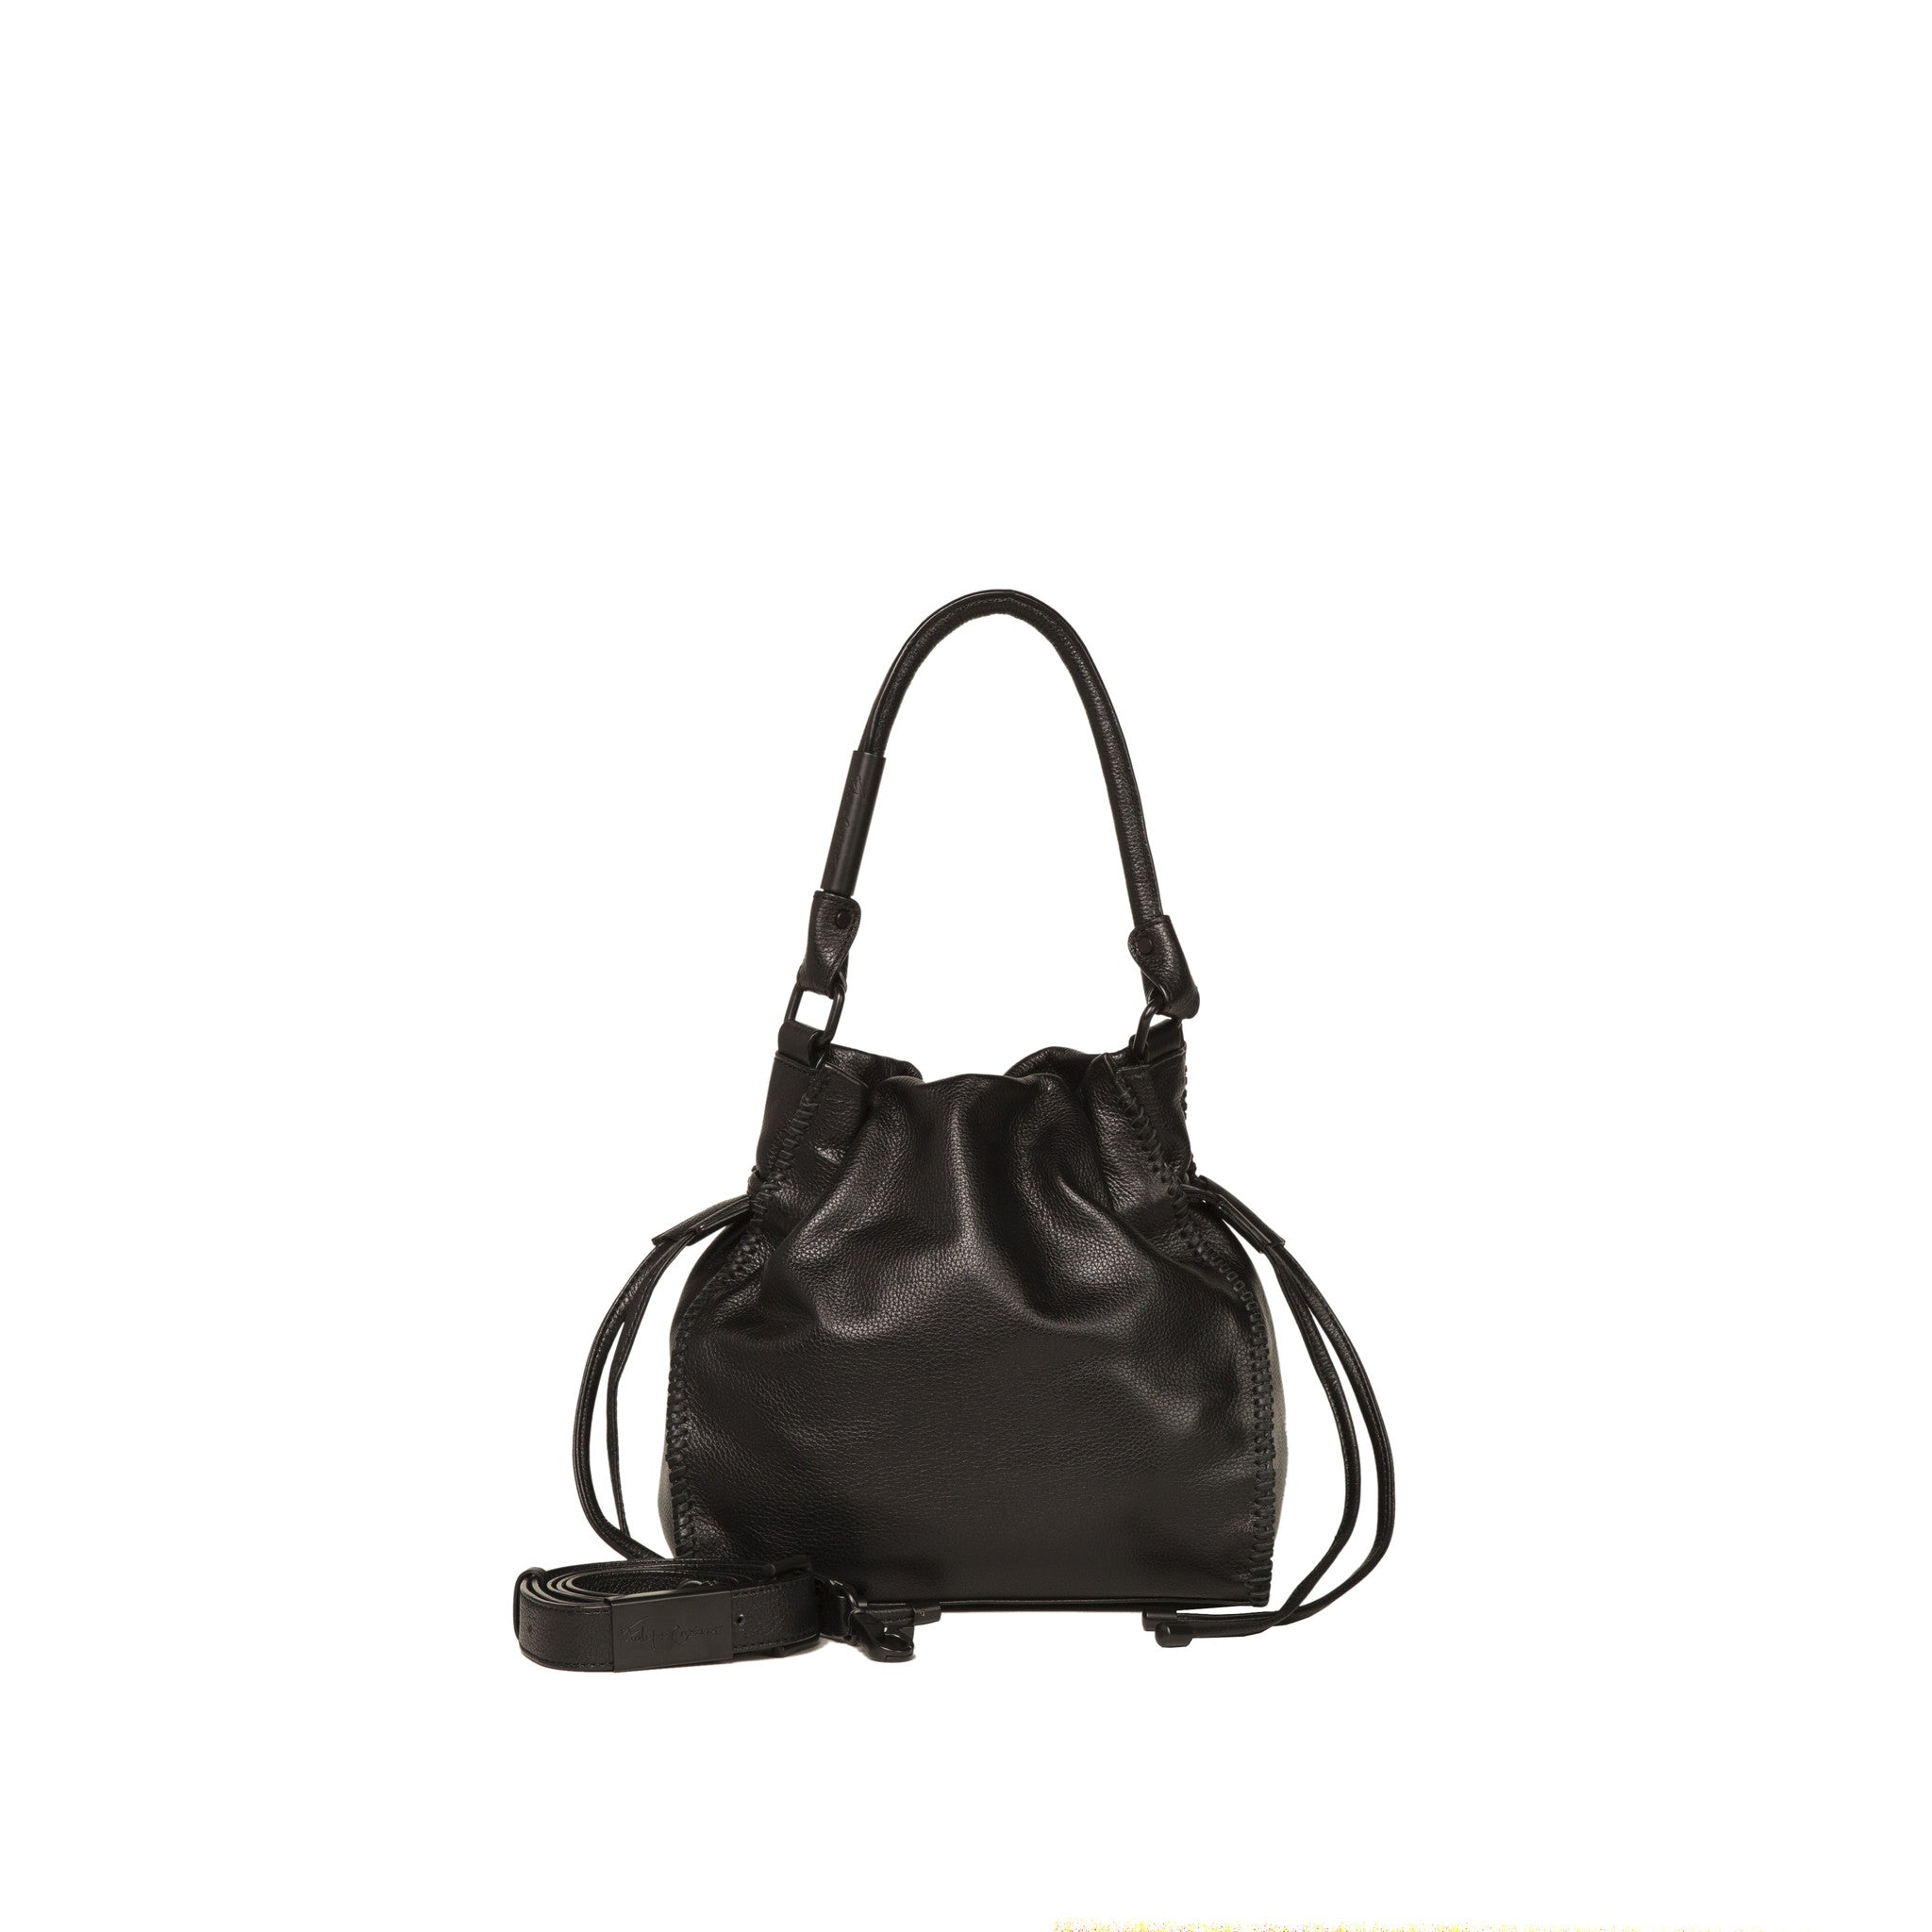 AMI DRAWSTRING TOTE IN BLACK